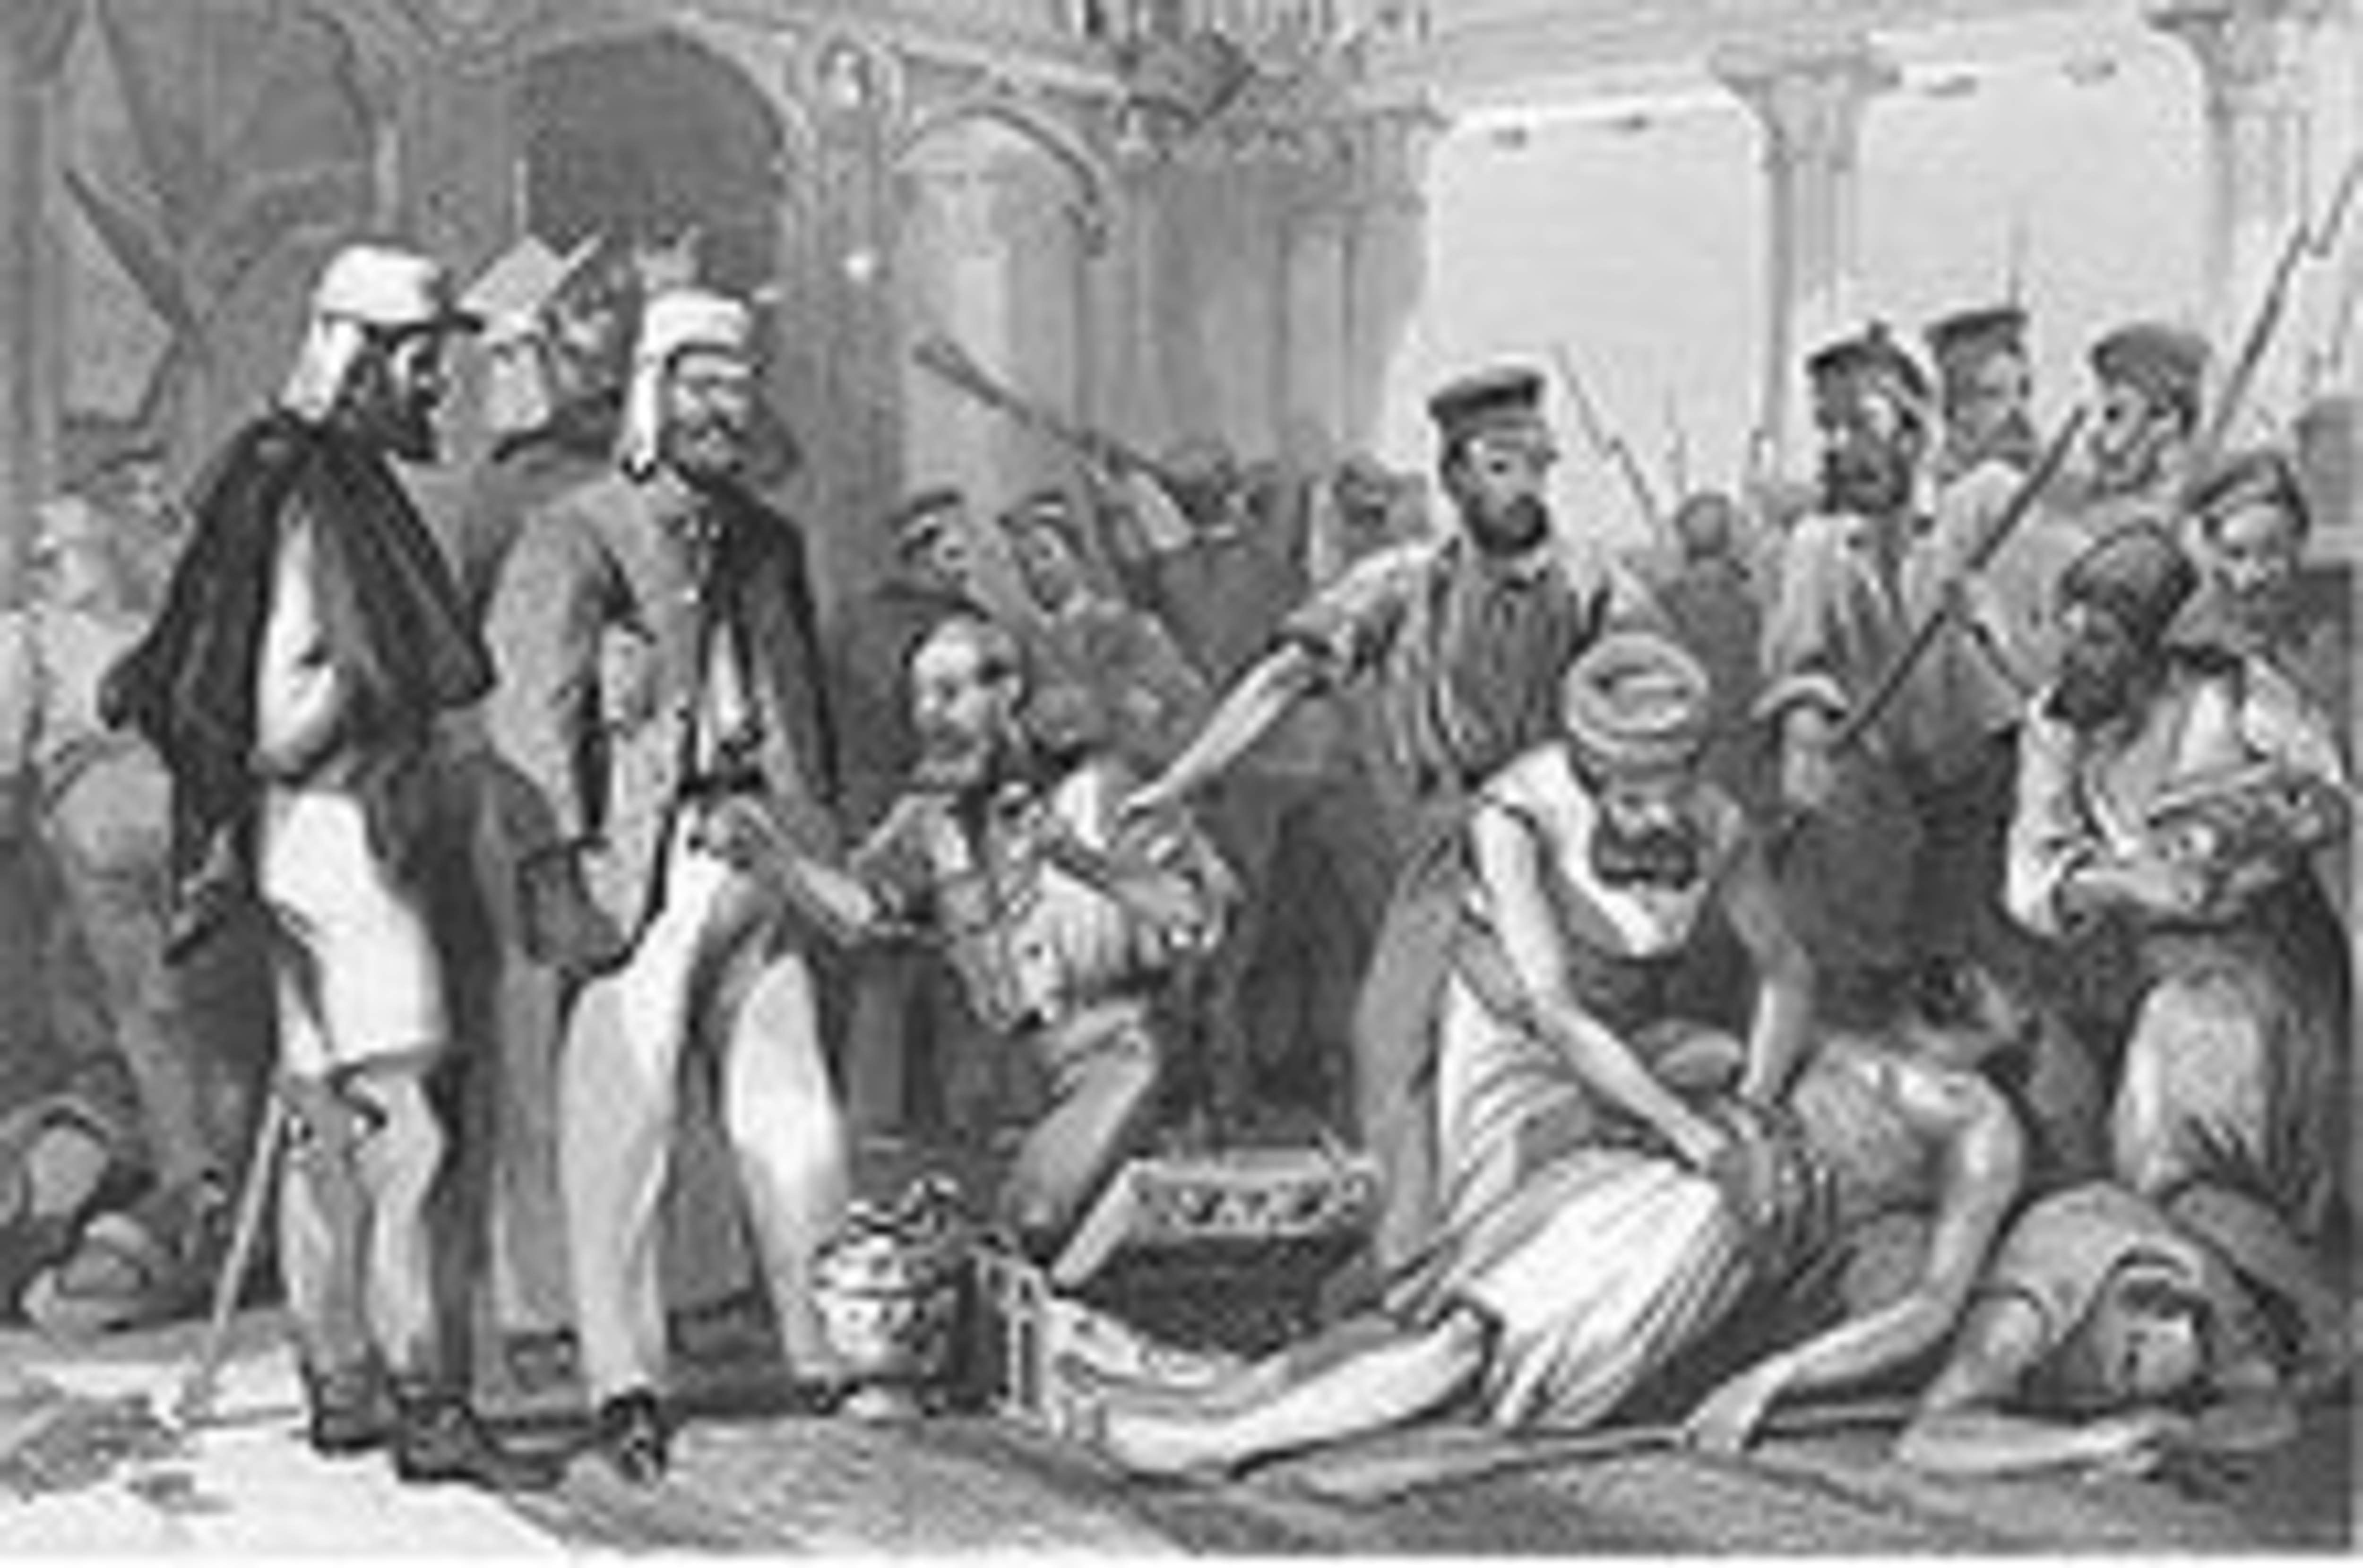 British soldiers looting Kaiser Bagh after its recapture, steel engraving, late 1850s (wikipedia)